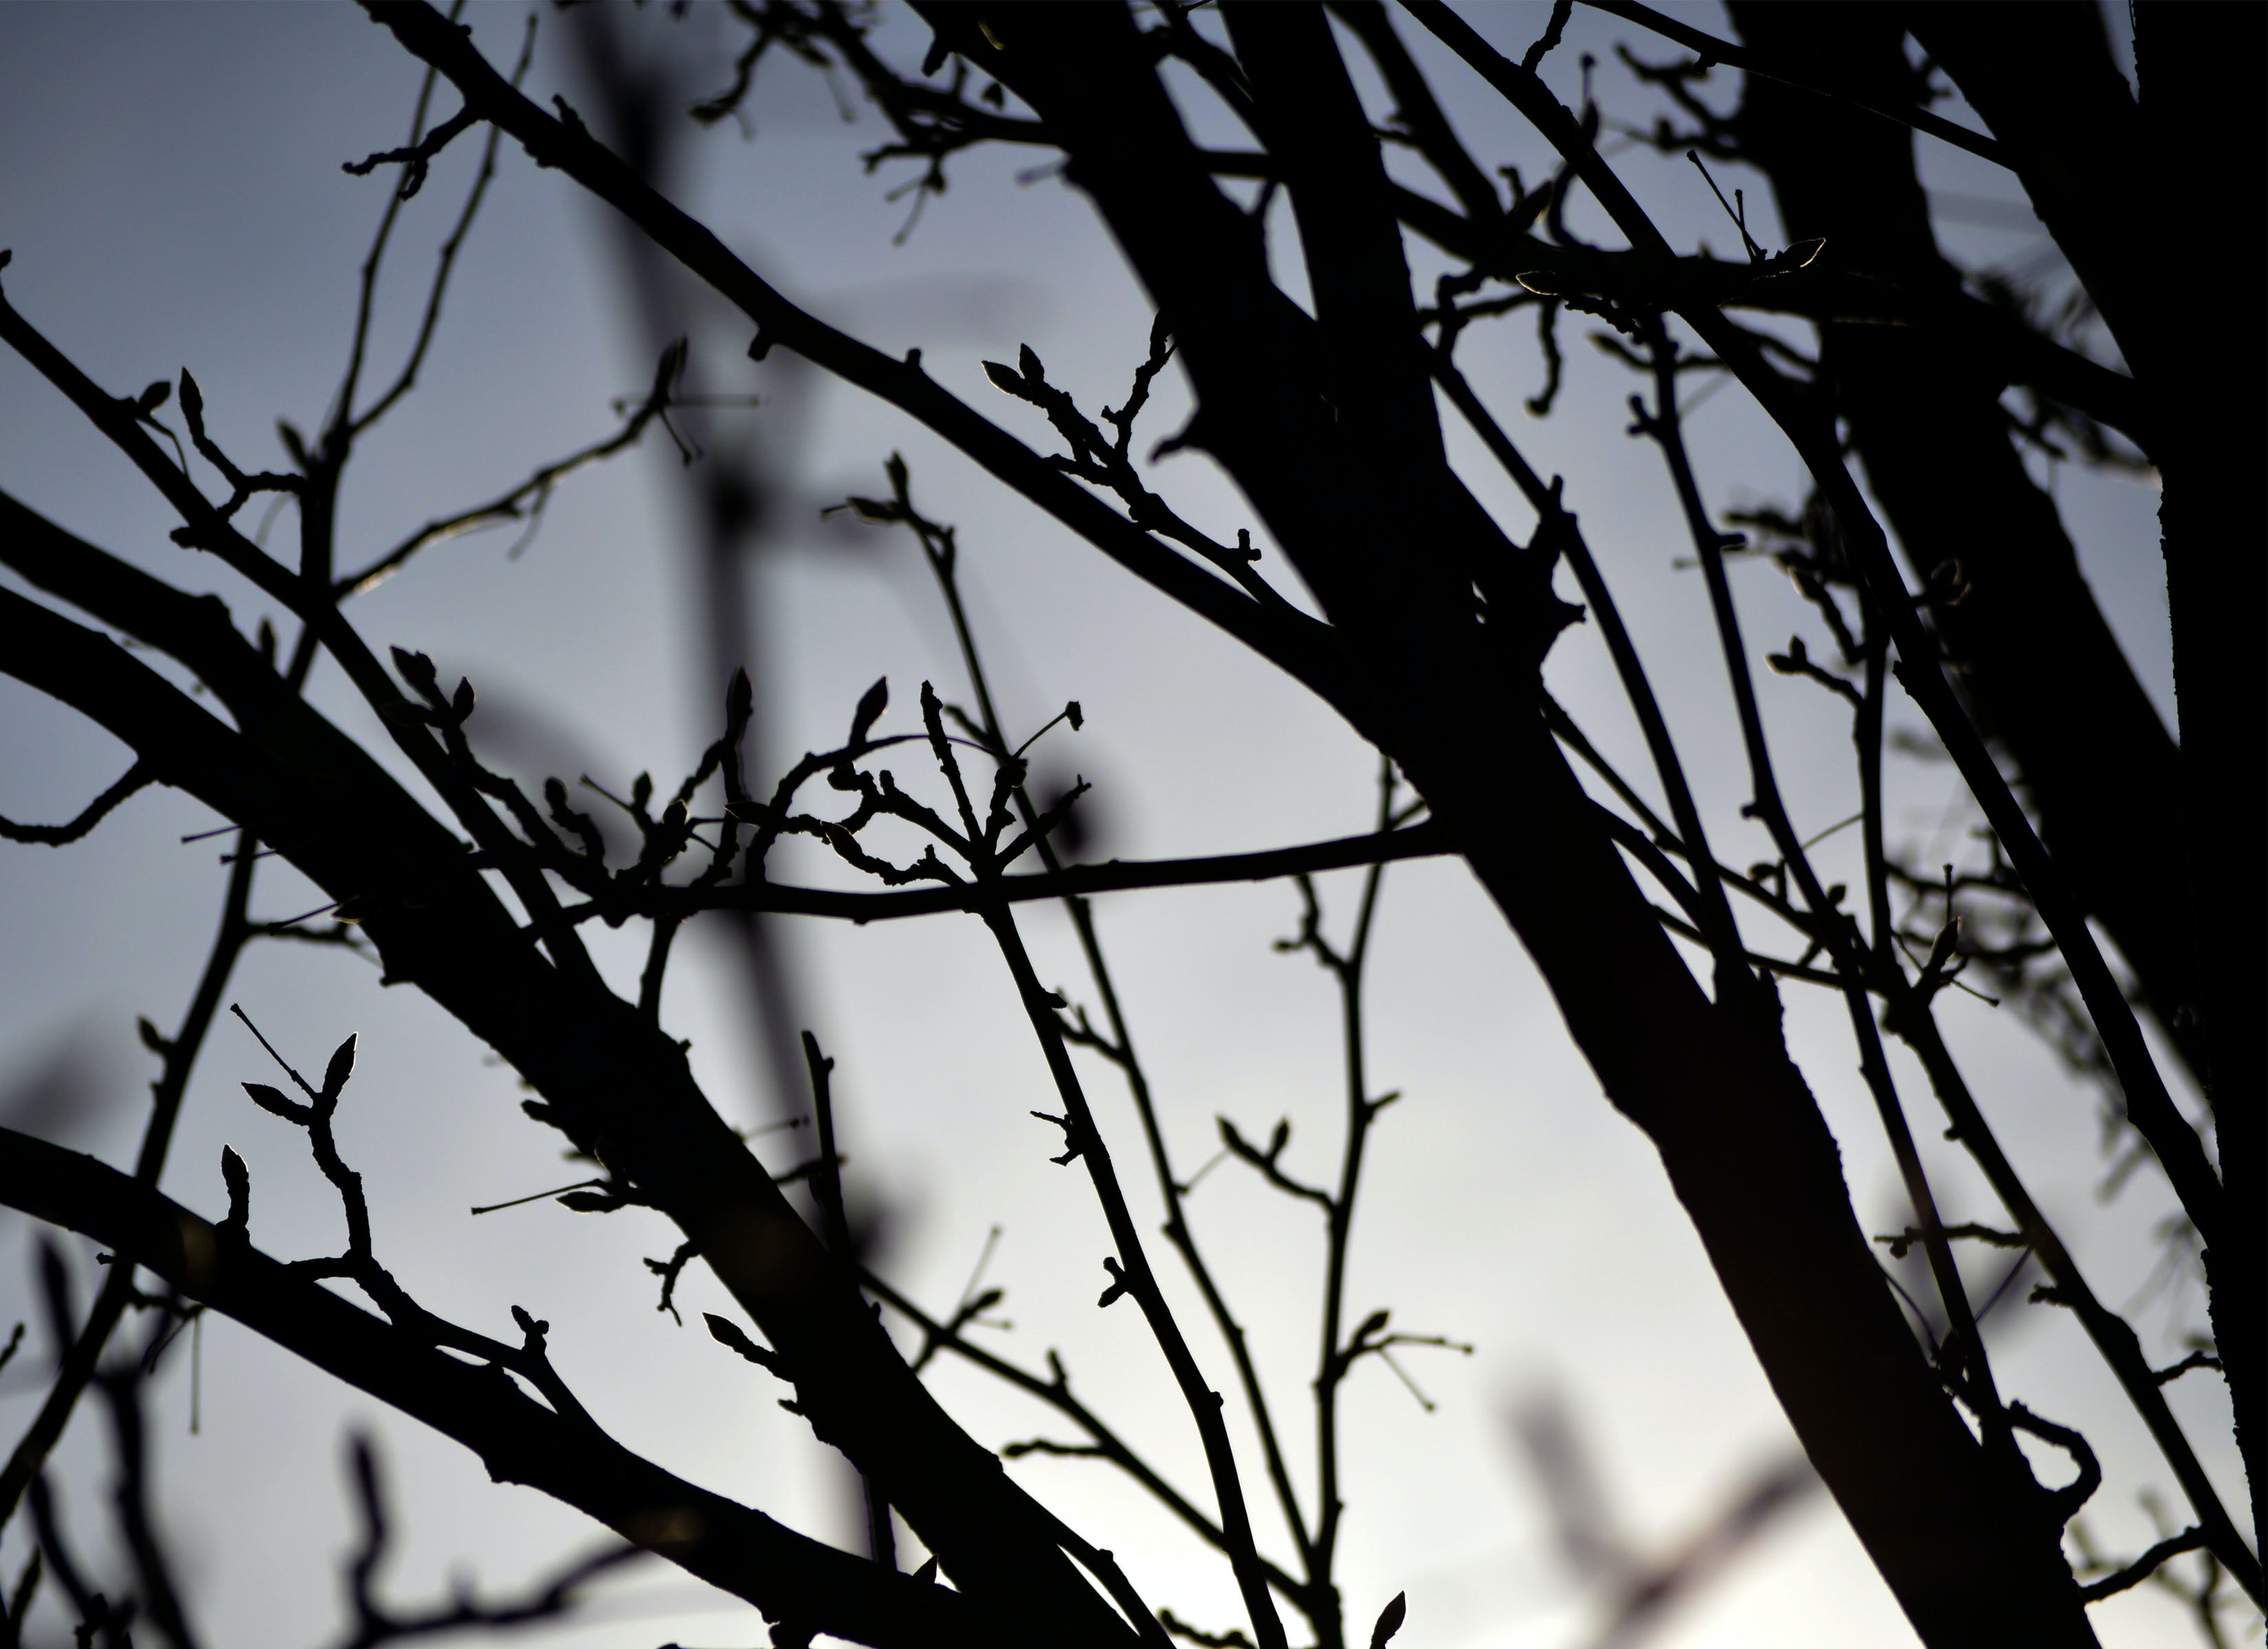 Silhouettes of buds on tree branches